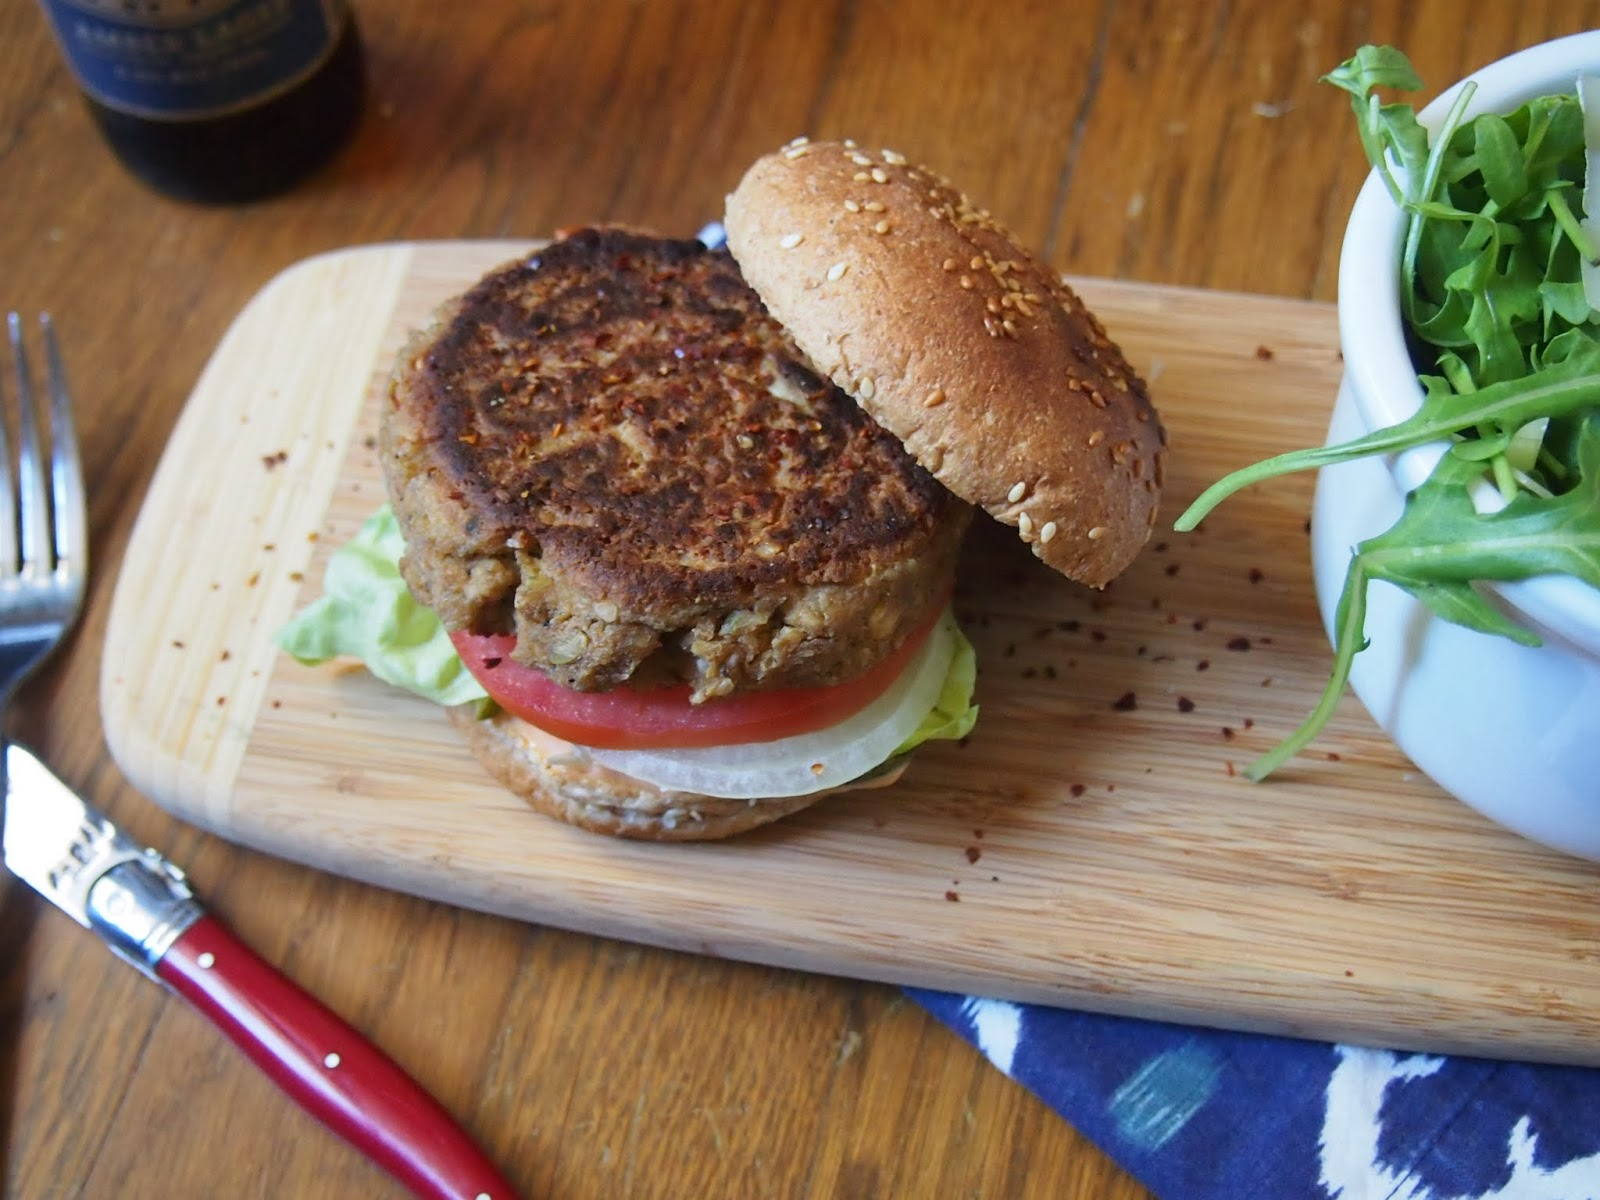 Spicy Tofu Burger